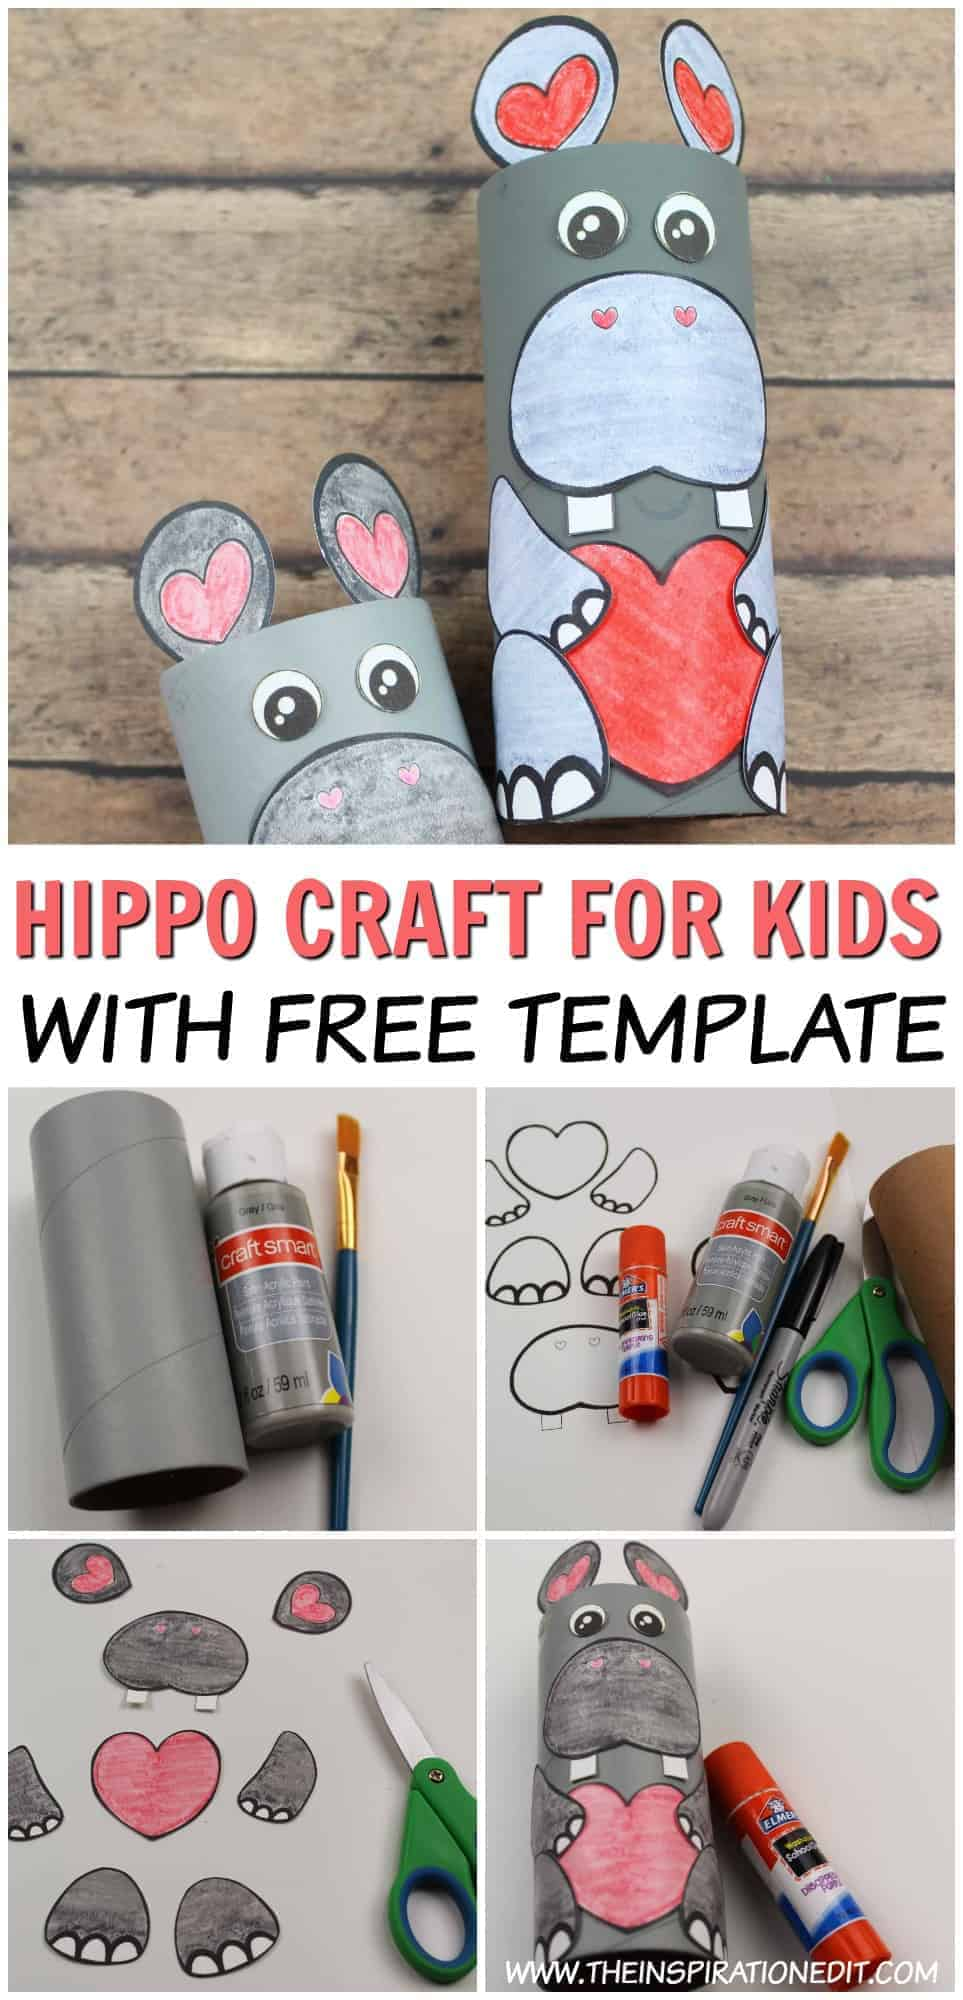 HIPPO CRAFT FOR KIDS